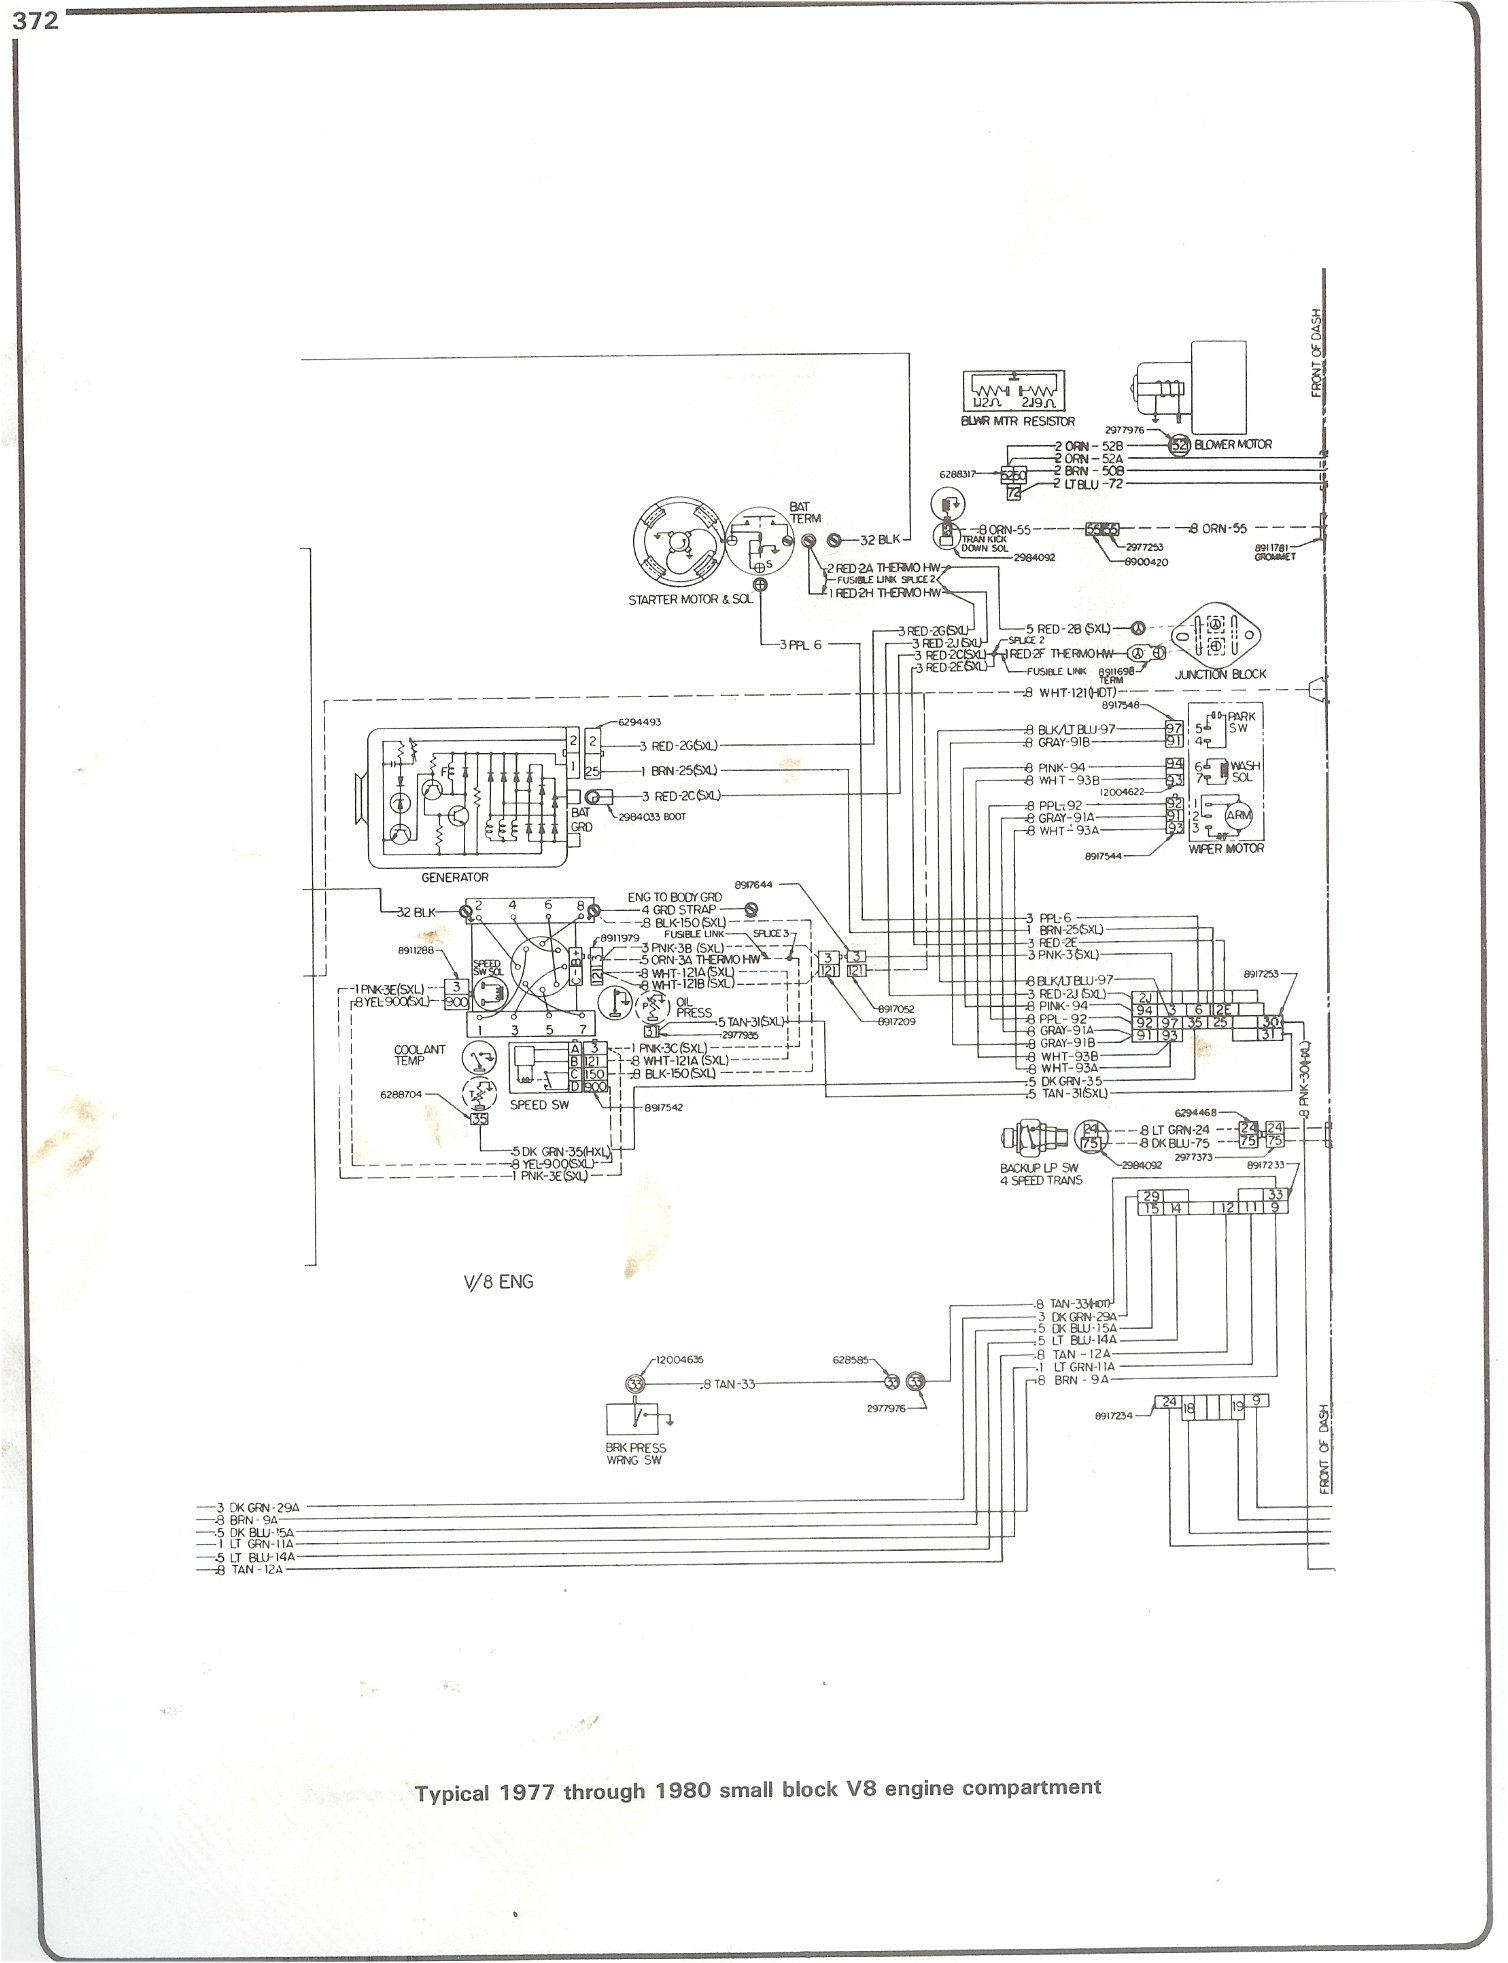 hight resolution of 75 k 5 wiring diagram wiring diagram1976 chevy k 5 wiring diagram wiring diagram site1977 chevy